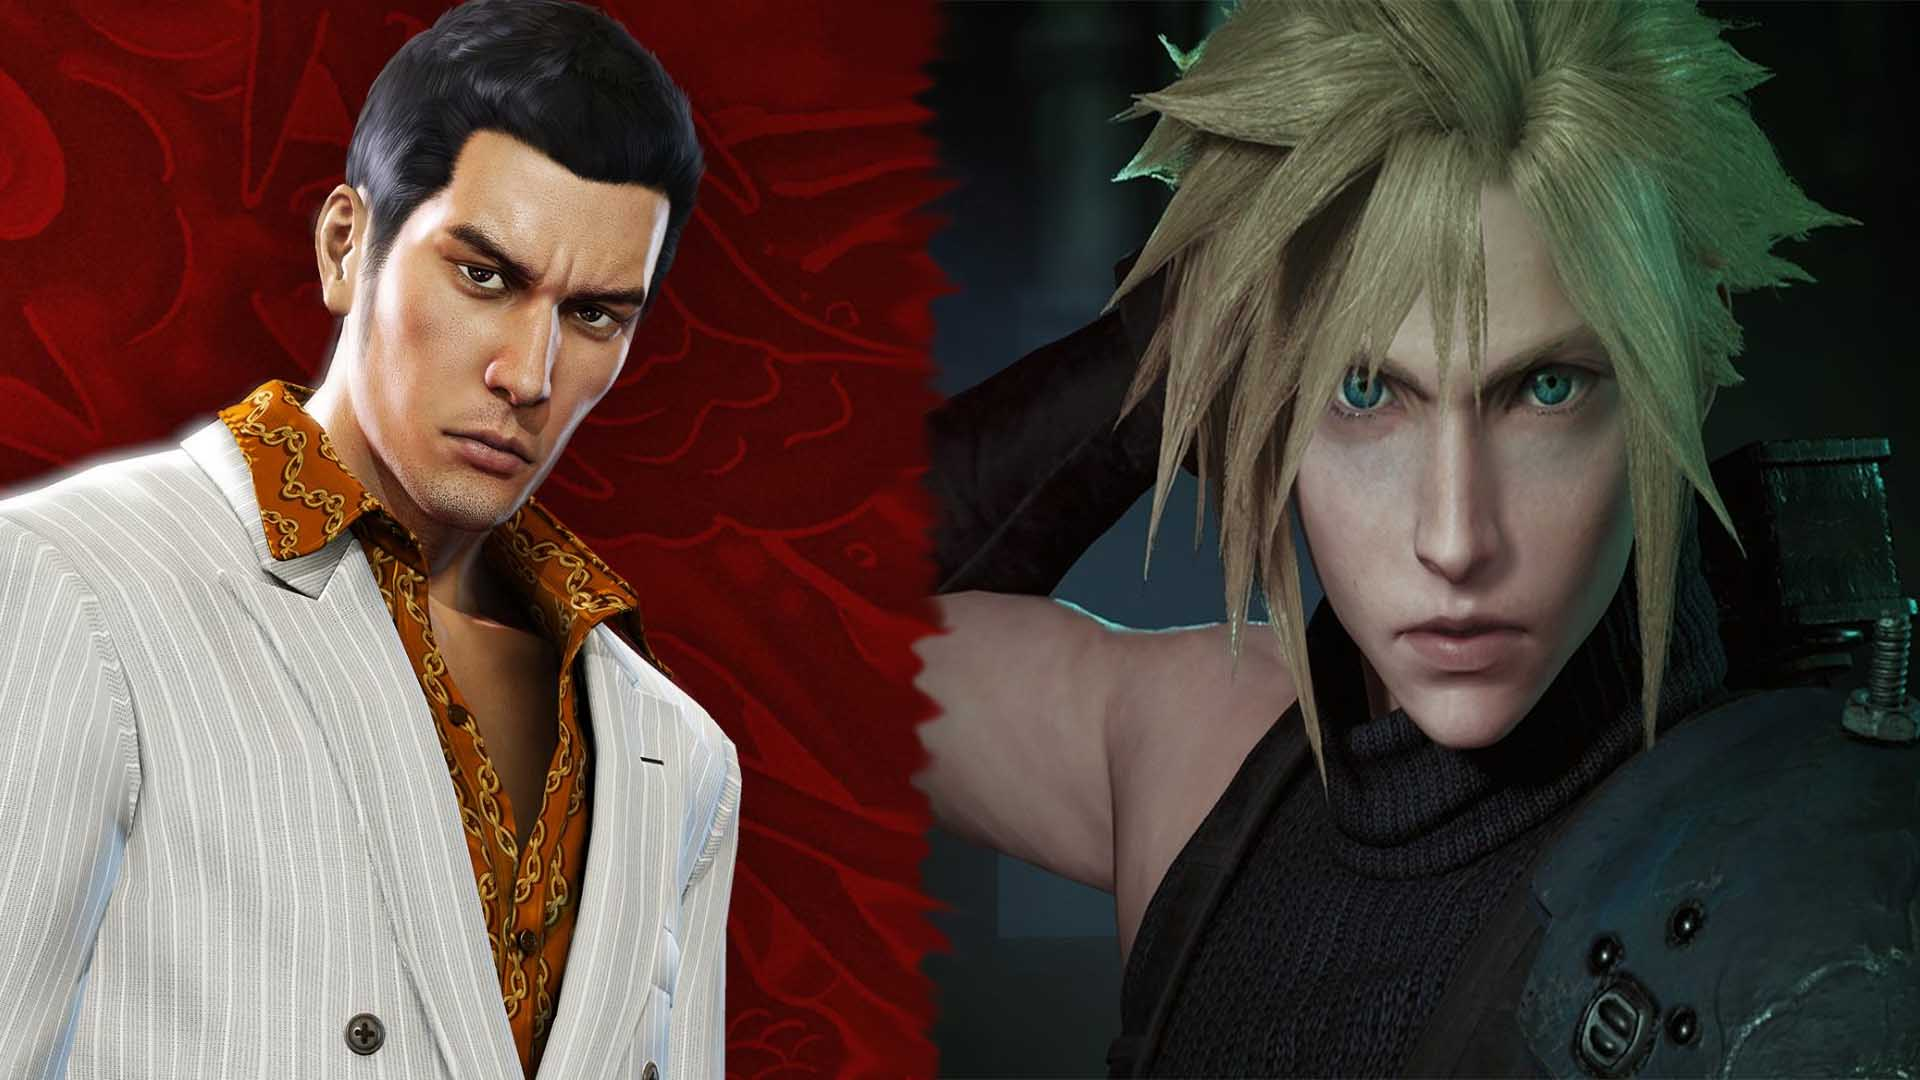 Yakuza y Final Fantasy VII Remake